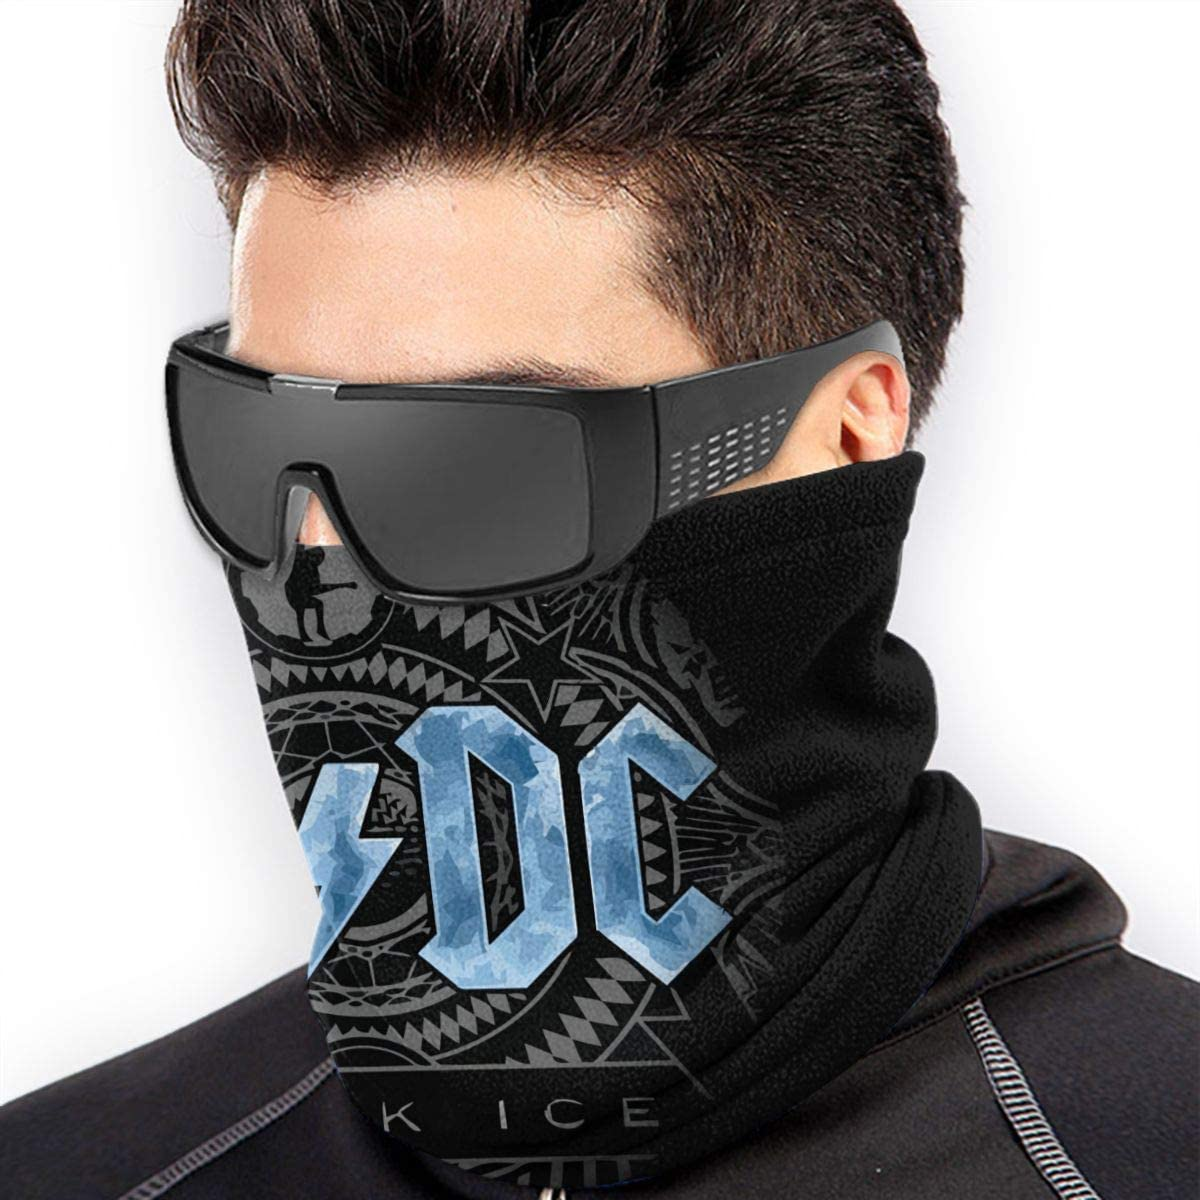 ACDC Highly Elastic Warm Microfiber Neck Thermal Mask Scarf Unisex Windproof Suitable For Winter